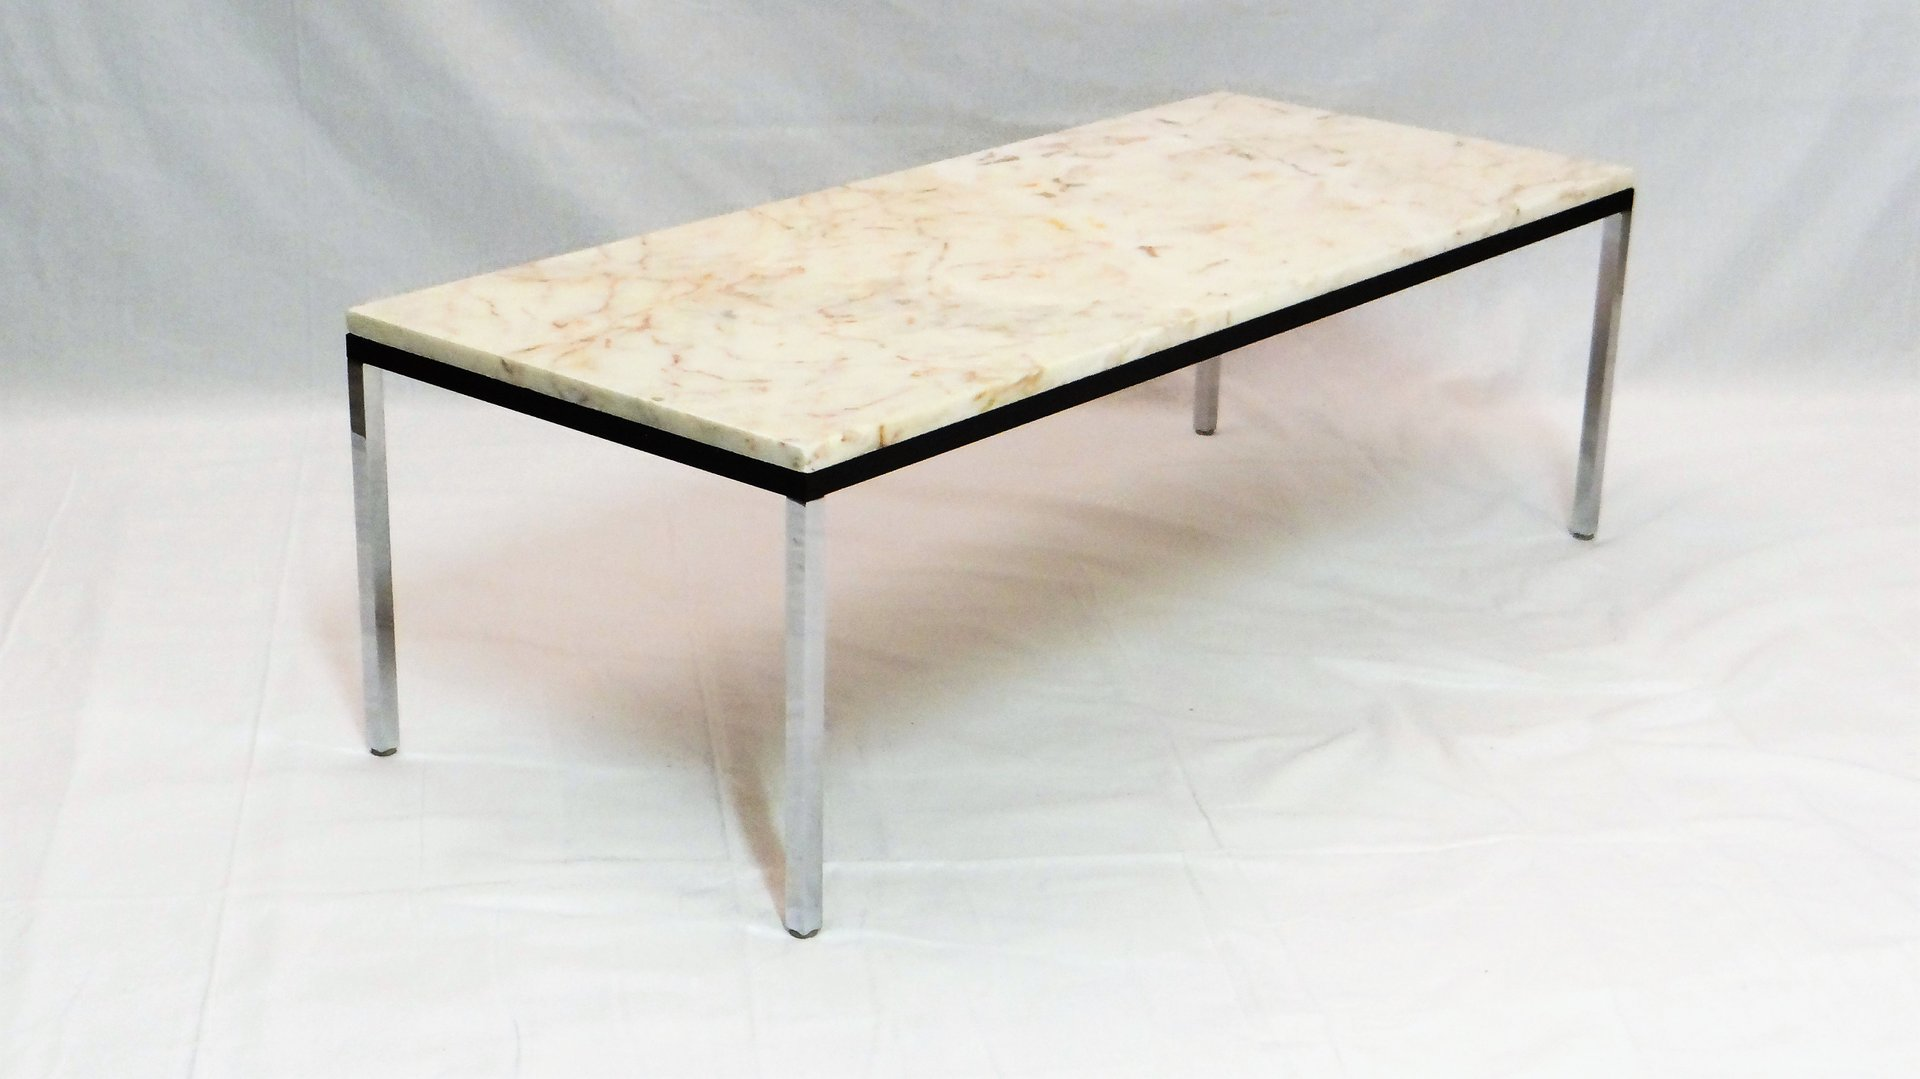 Belgian Marble Coffee Table By Florence Knoll For Knoll 1960s For Sale At Pamono